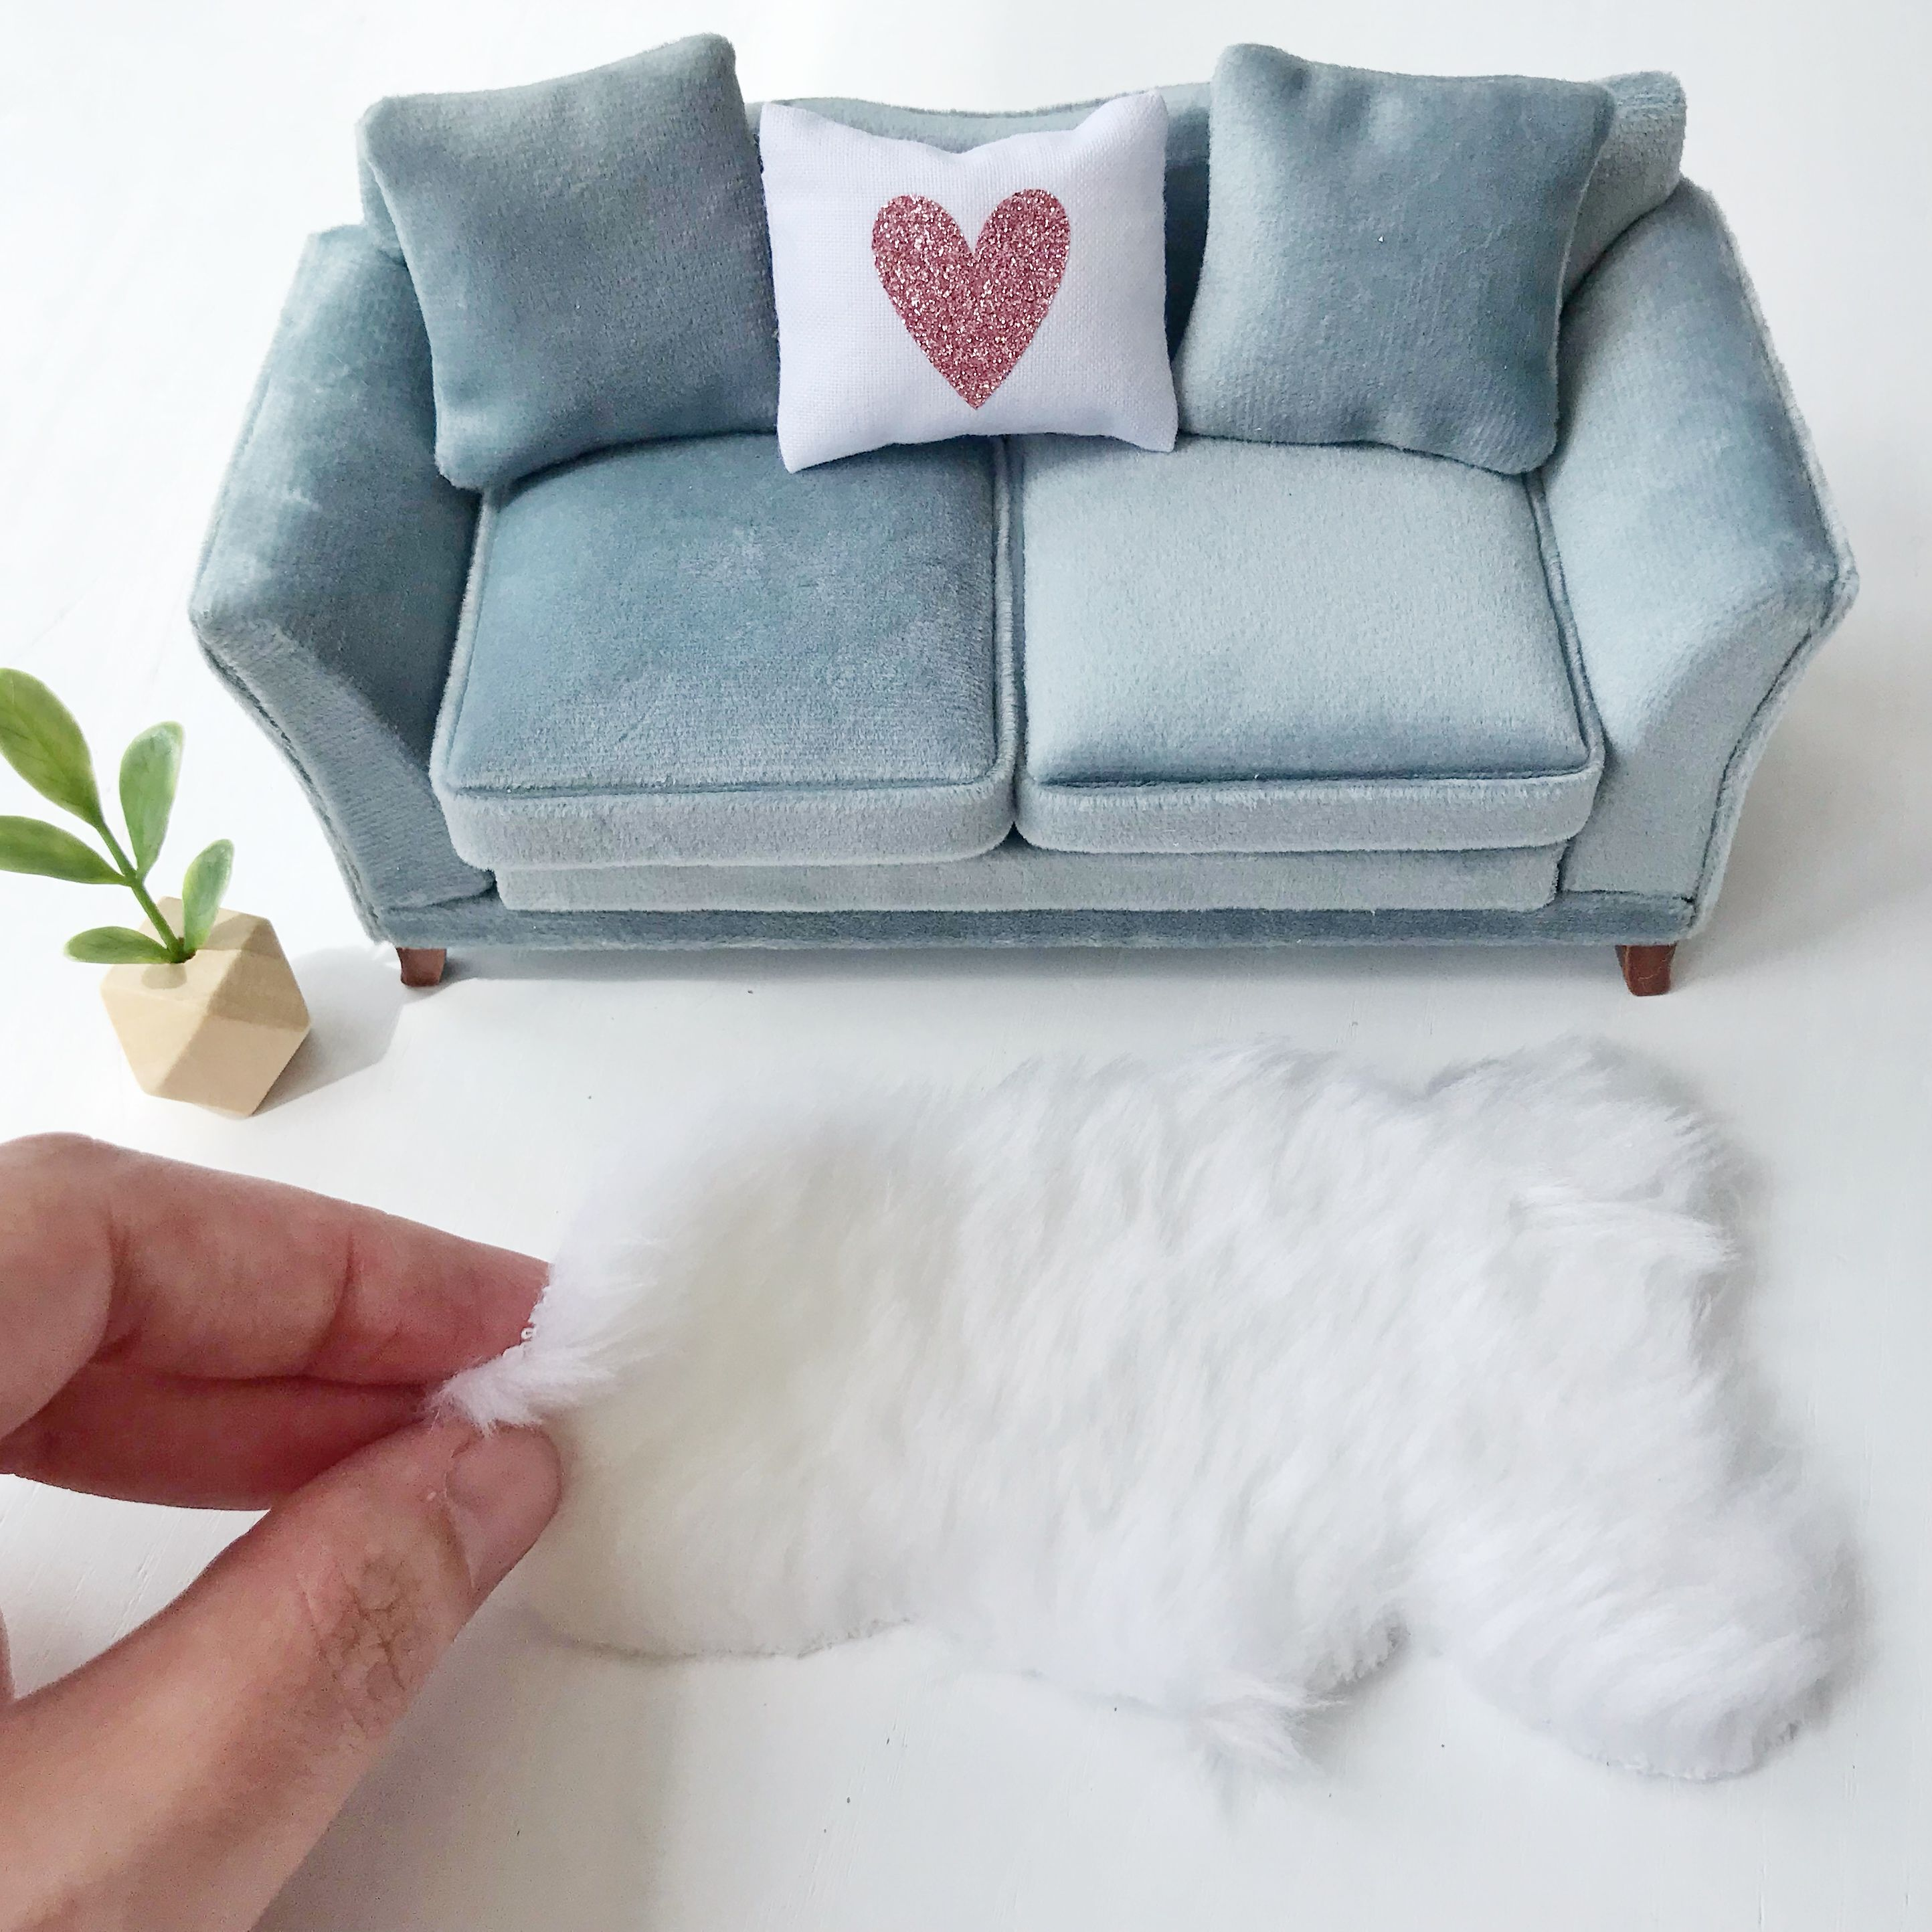 Stylish grey modern miniature dollhouse sofa with miniature rug